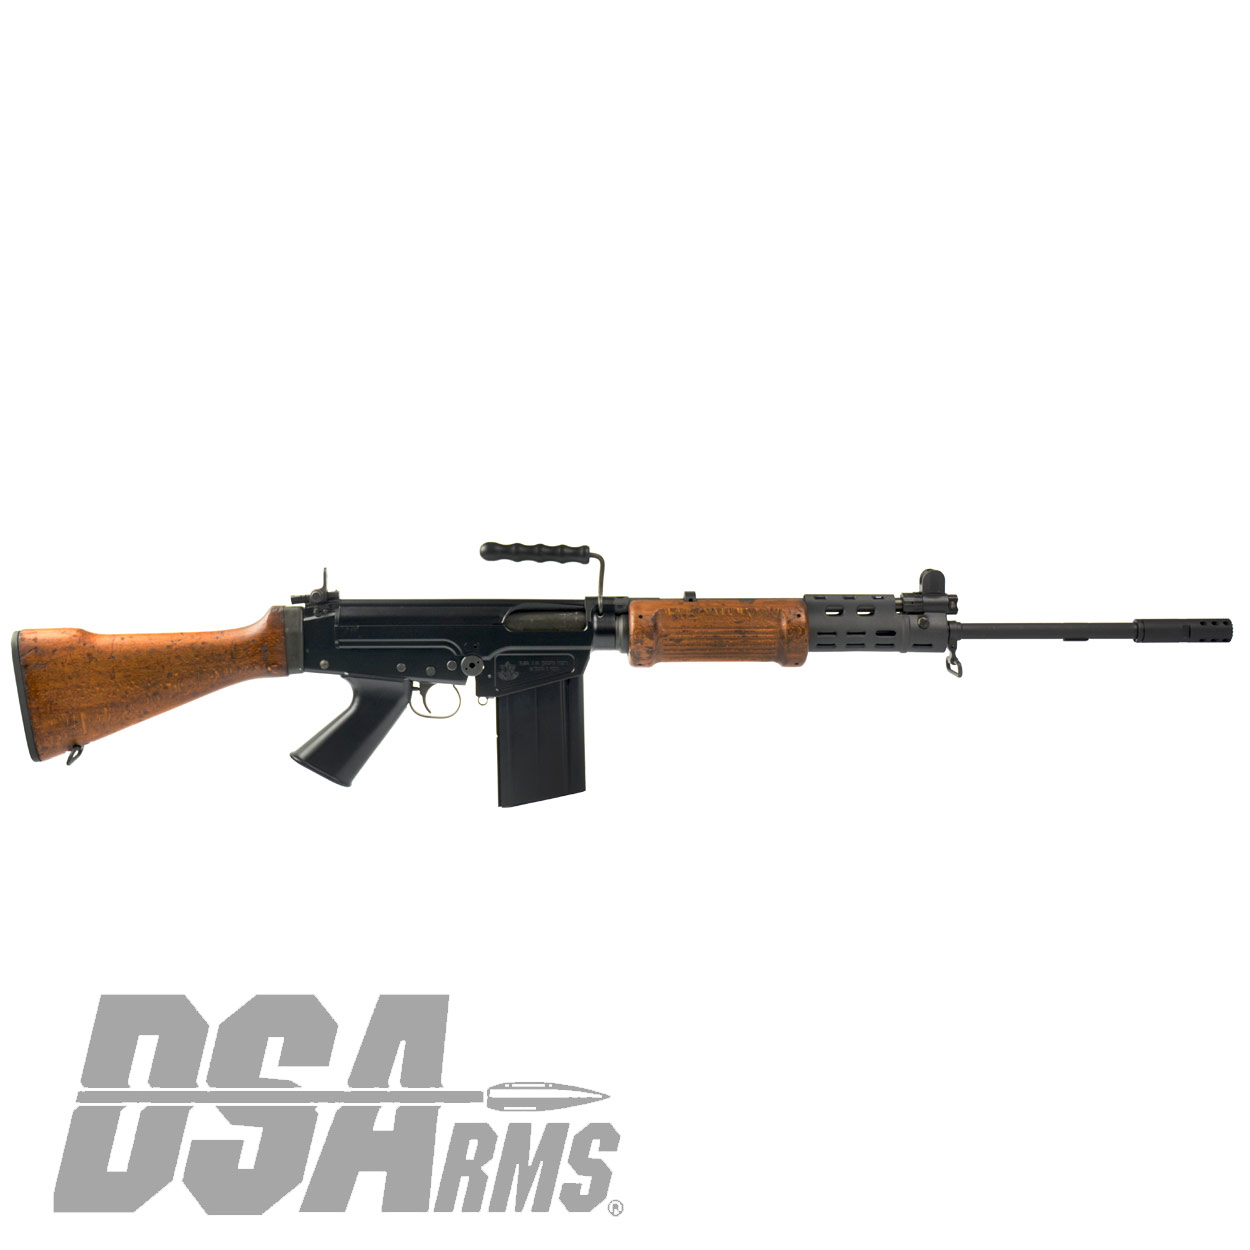 Dsa Sa58 Fal 21 Israeli Light Barrel Rifle Officer Grade Hebrew